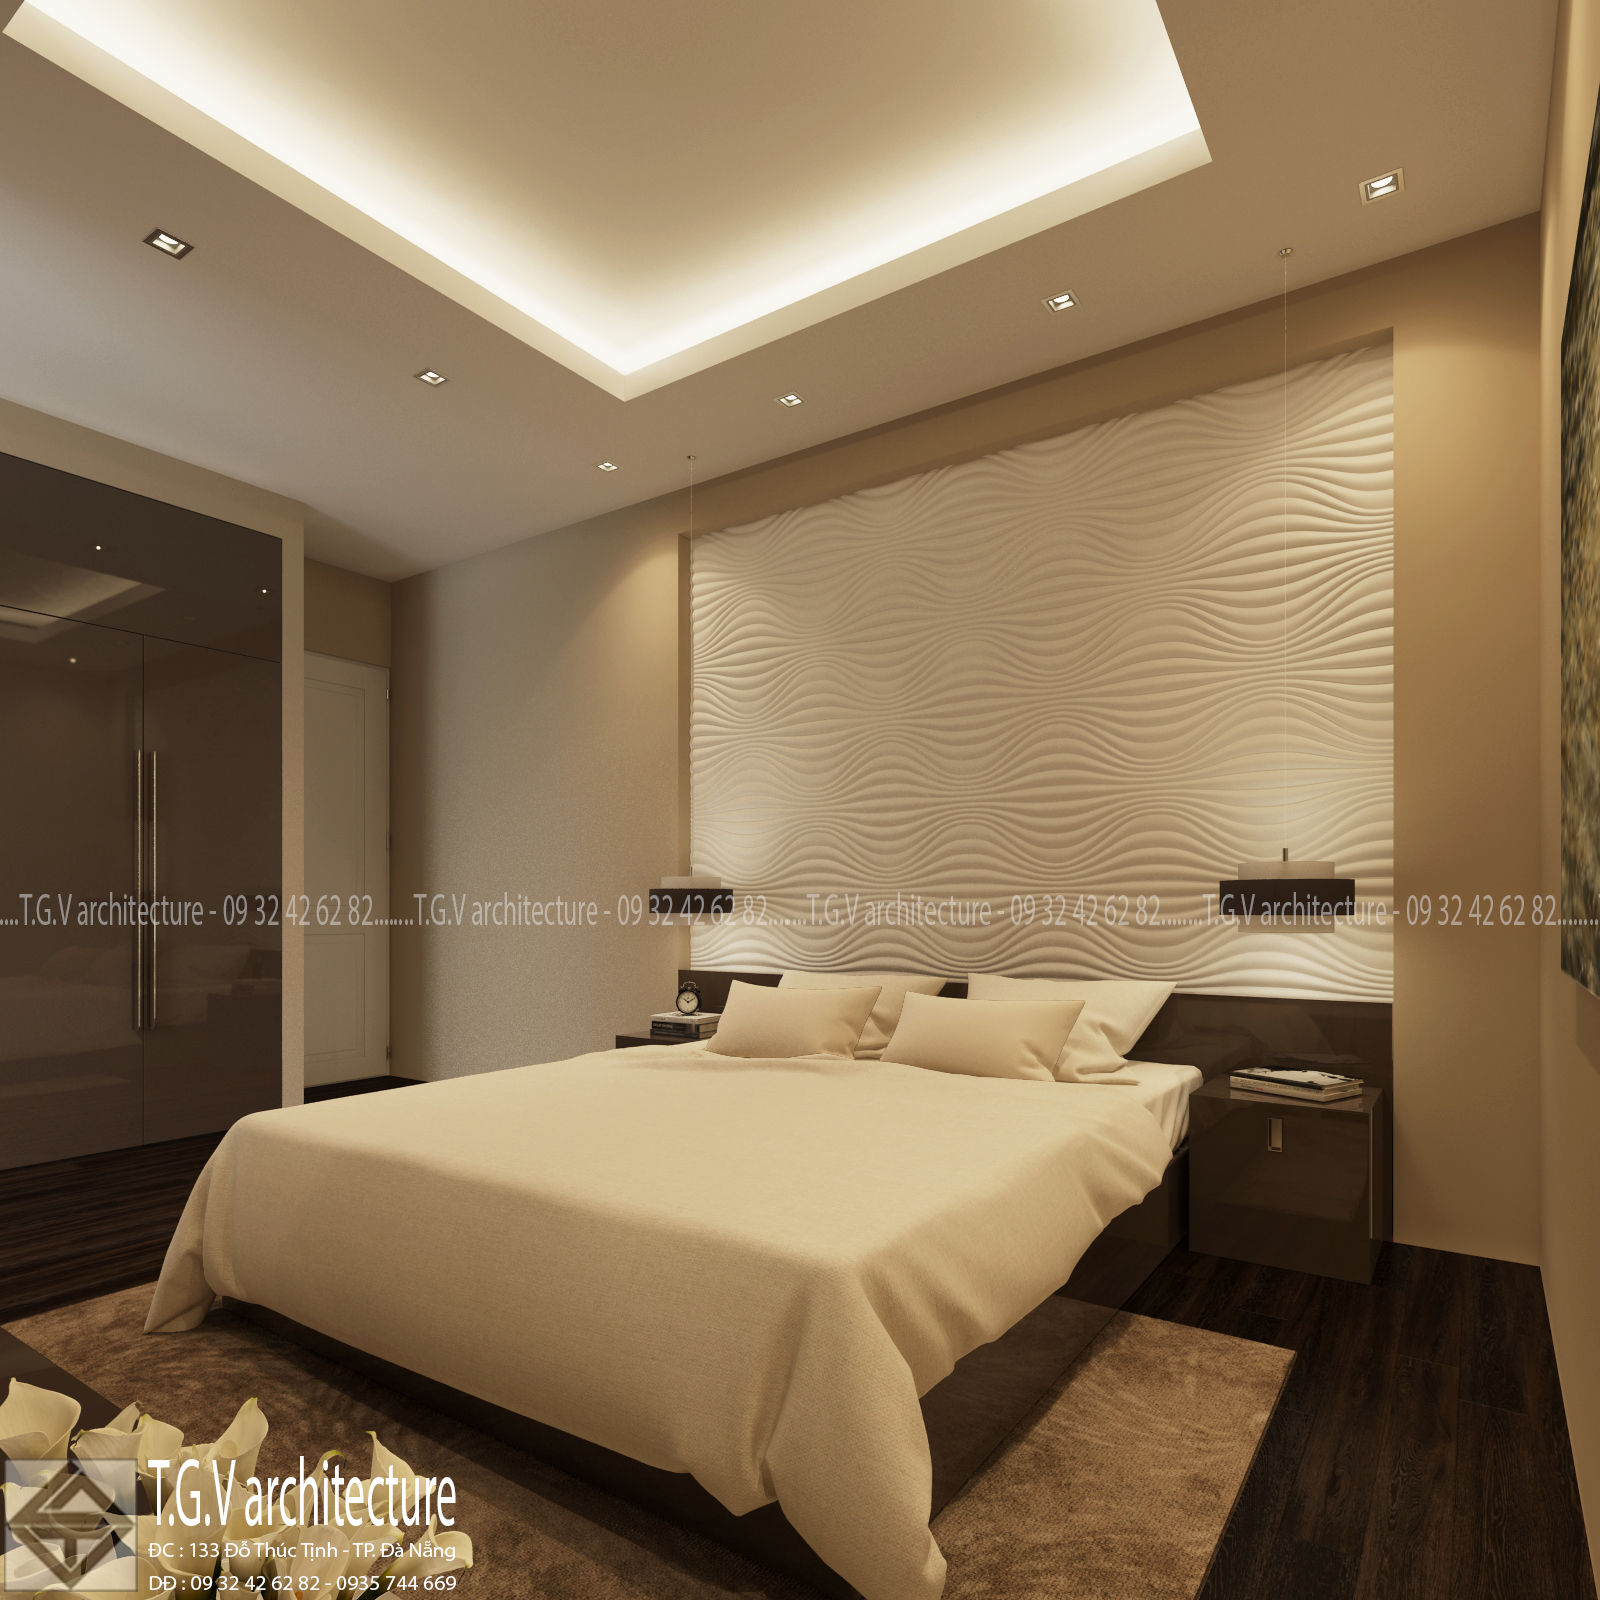 Bedroom_02_view_04